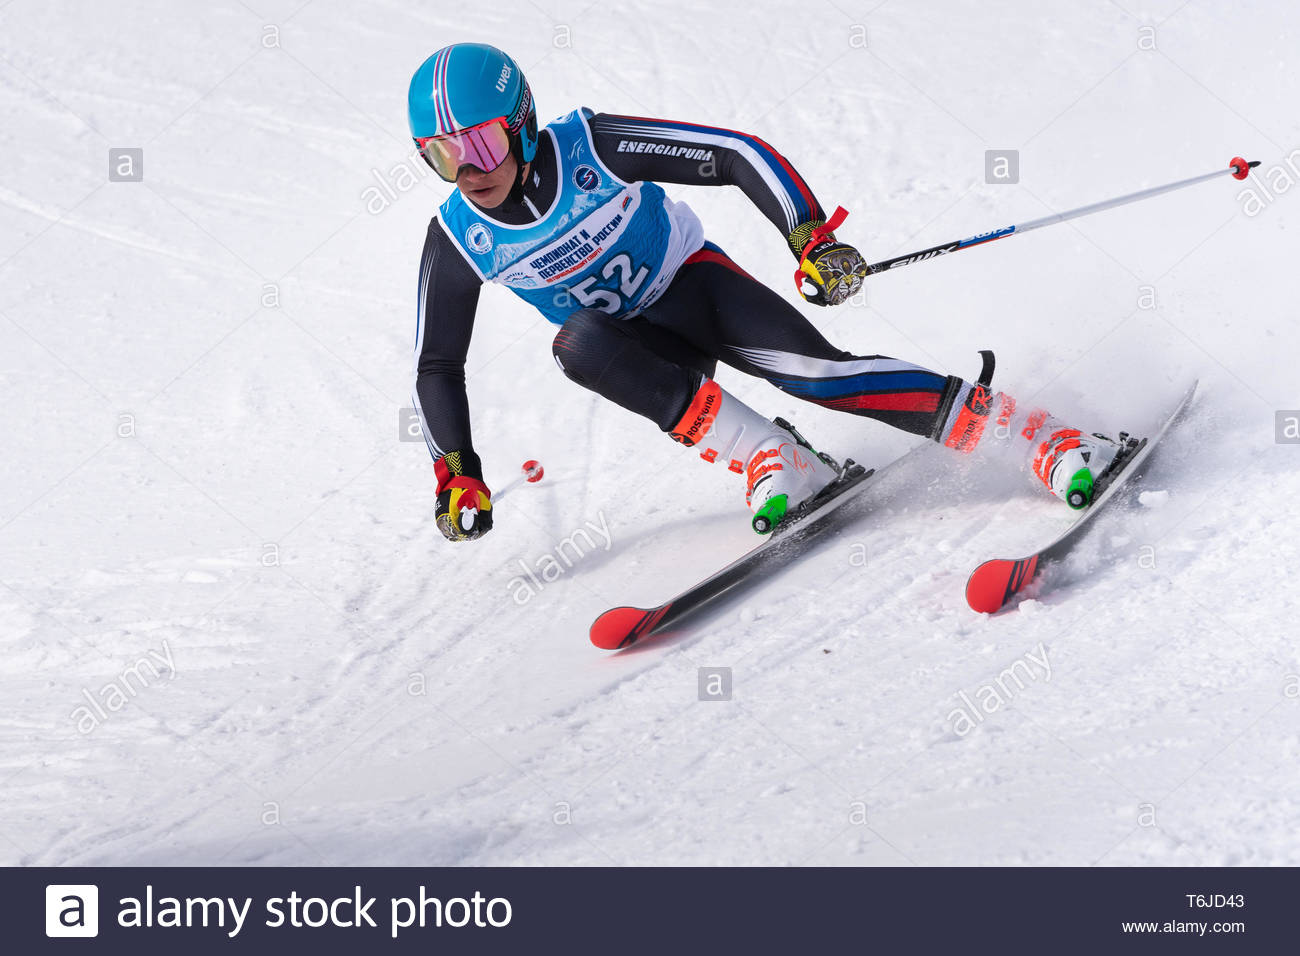 KAMCHATKA PENINSULA, RUSSIA - APR 1, 2019: Mountain skier Sitchikhin Maxim (Kamchatka) skiing down mount slope. Russian Alpine Skiing Cup, Internation - Stock Image